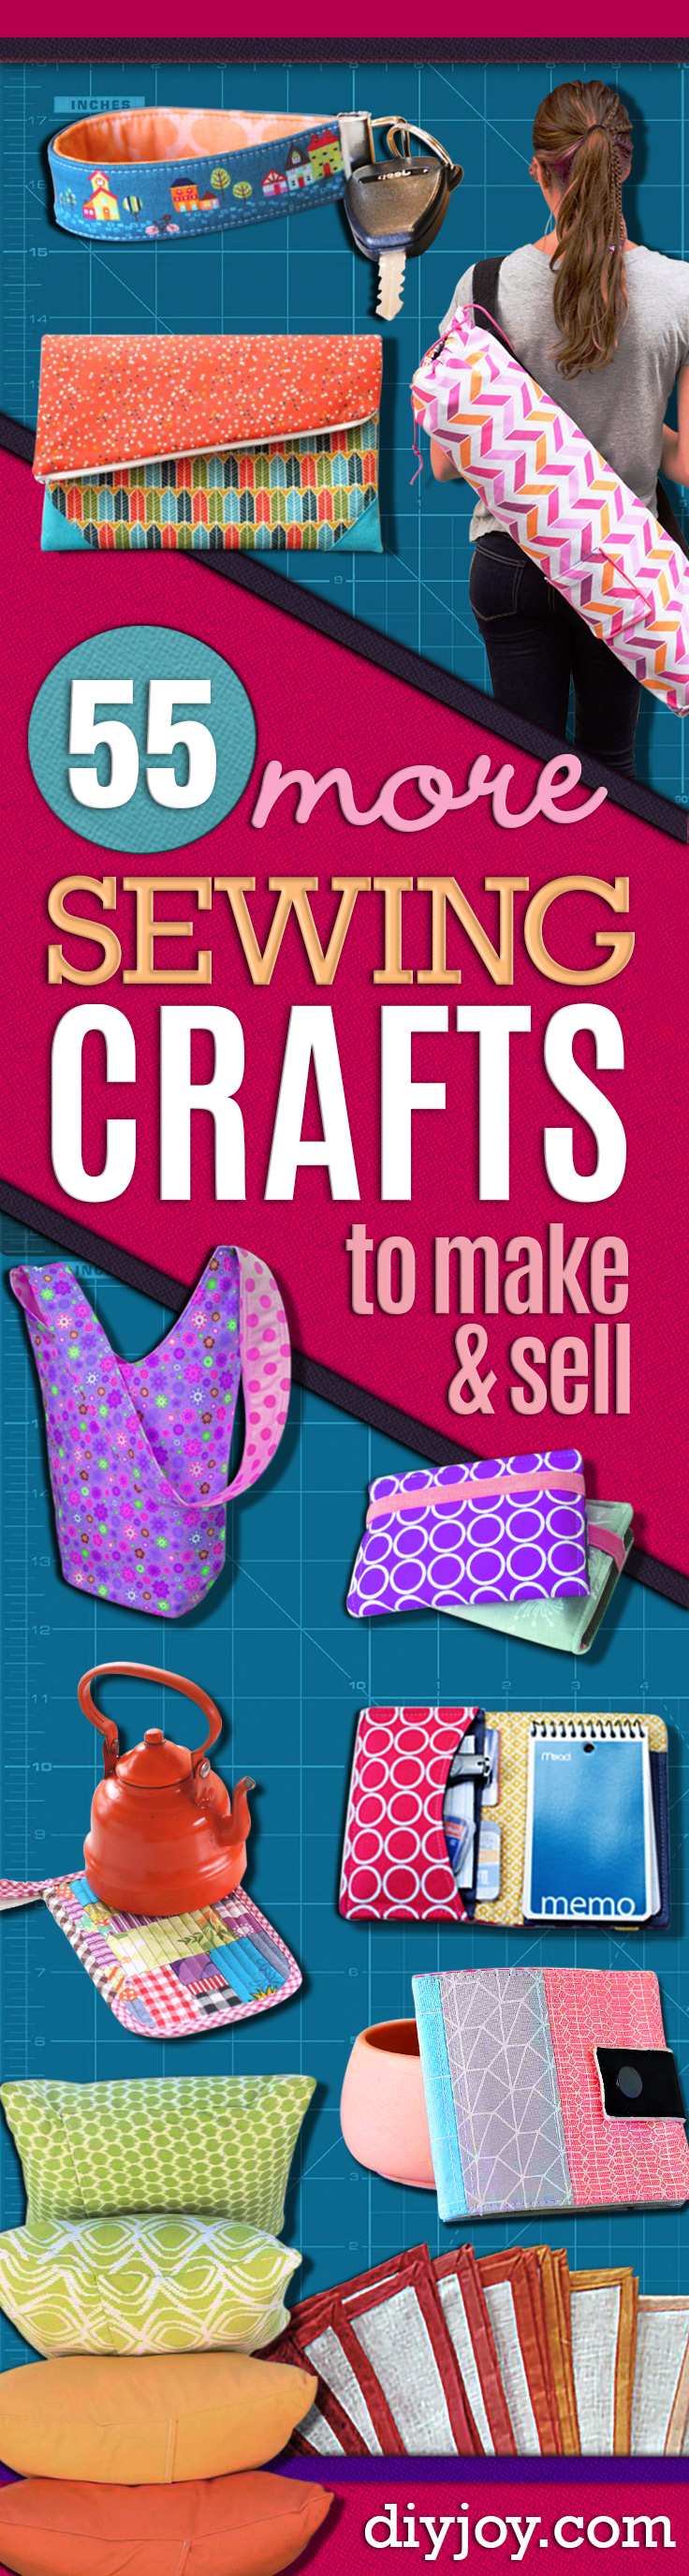 Sewing Crafts To Make and Sell - Easy DIY Sewing Ideas To Make and Sell for Your Craft Business. Make Money with these Simple Gift Ideas, Free Patterns, Products from Fabric Scraps, Cute Kids Tutorials